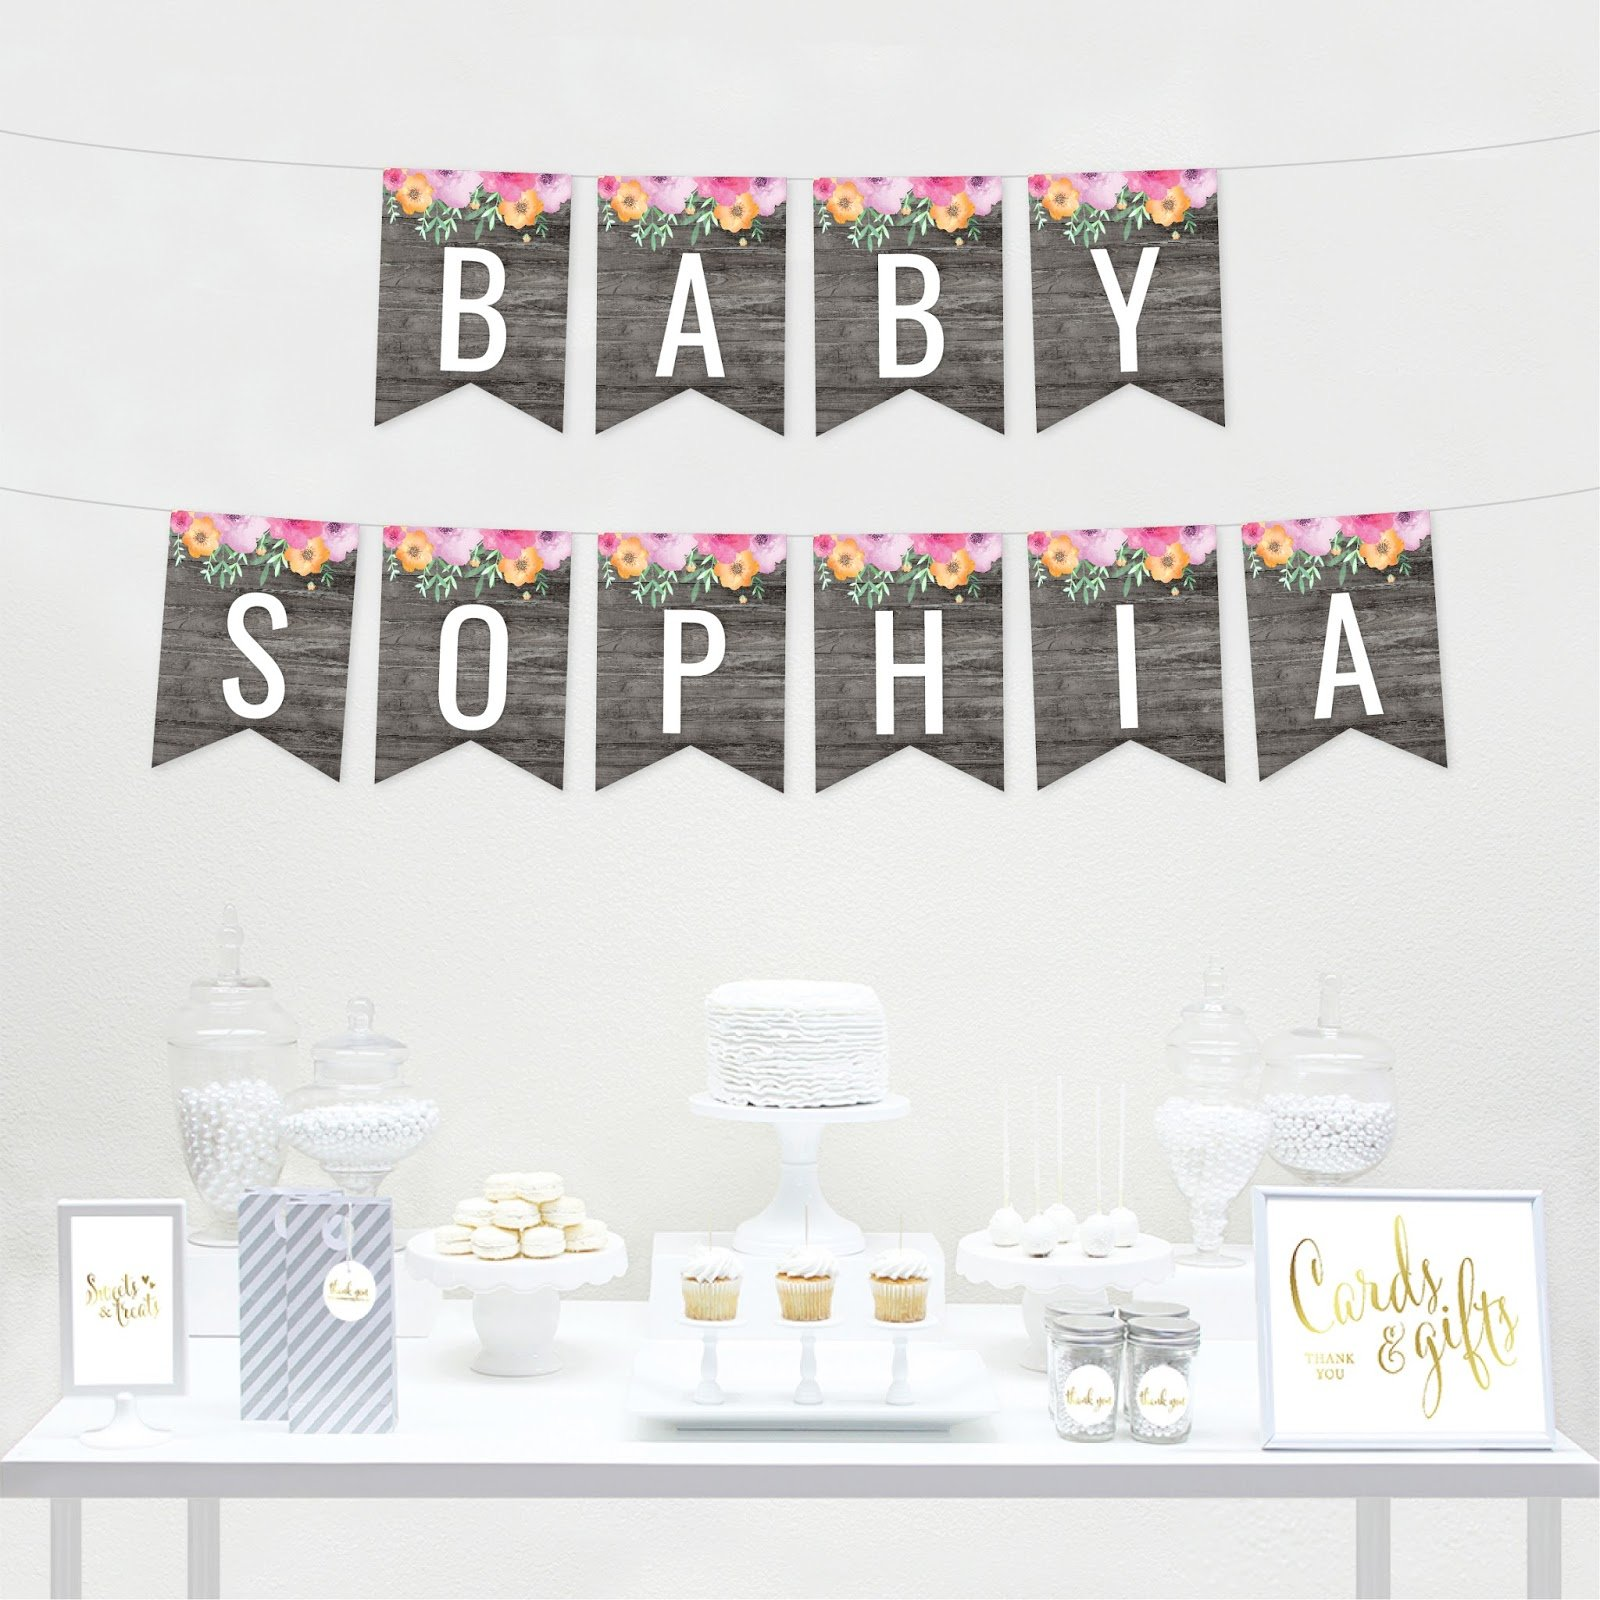 Andaz Press Personalized Modern Gray Wood with Flowers Party Banner Decorations, Baby Sophia, Custom Baby Name, Approx 5-Feet, 1-Set, Baby Shower Floral Colored Hanging Pennant Decor by Andaz Press (Image #2)